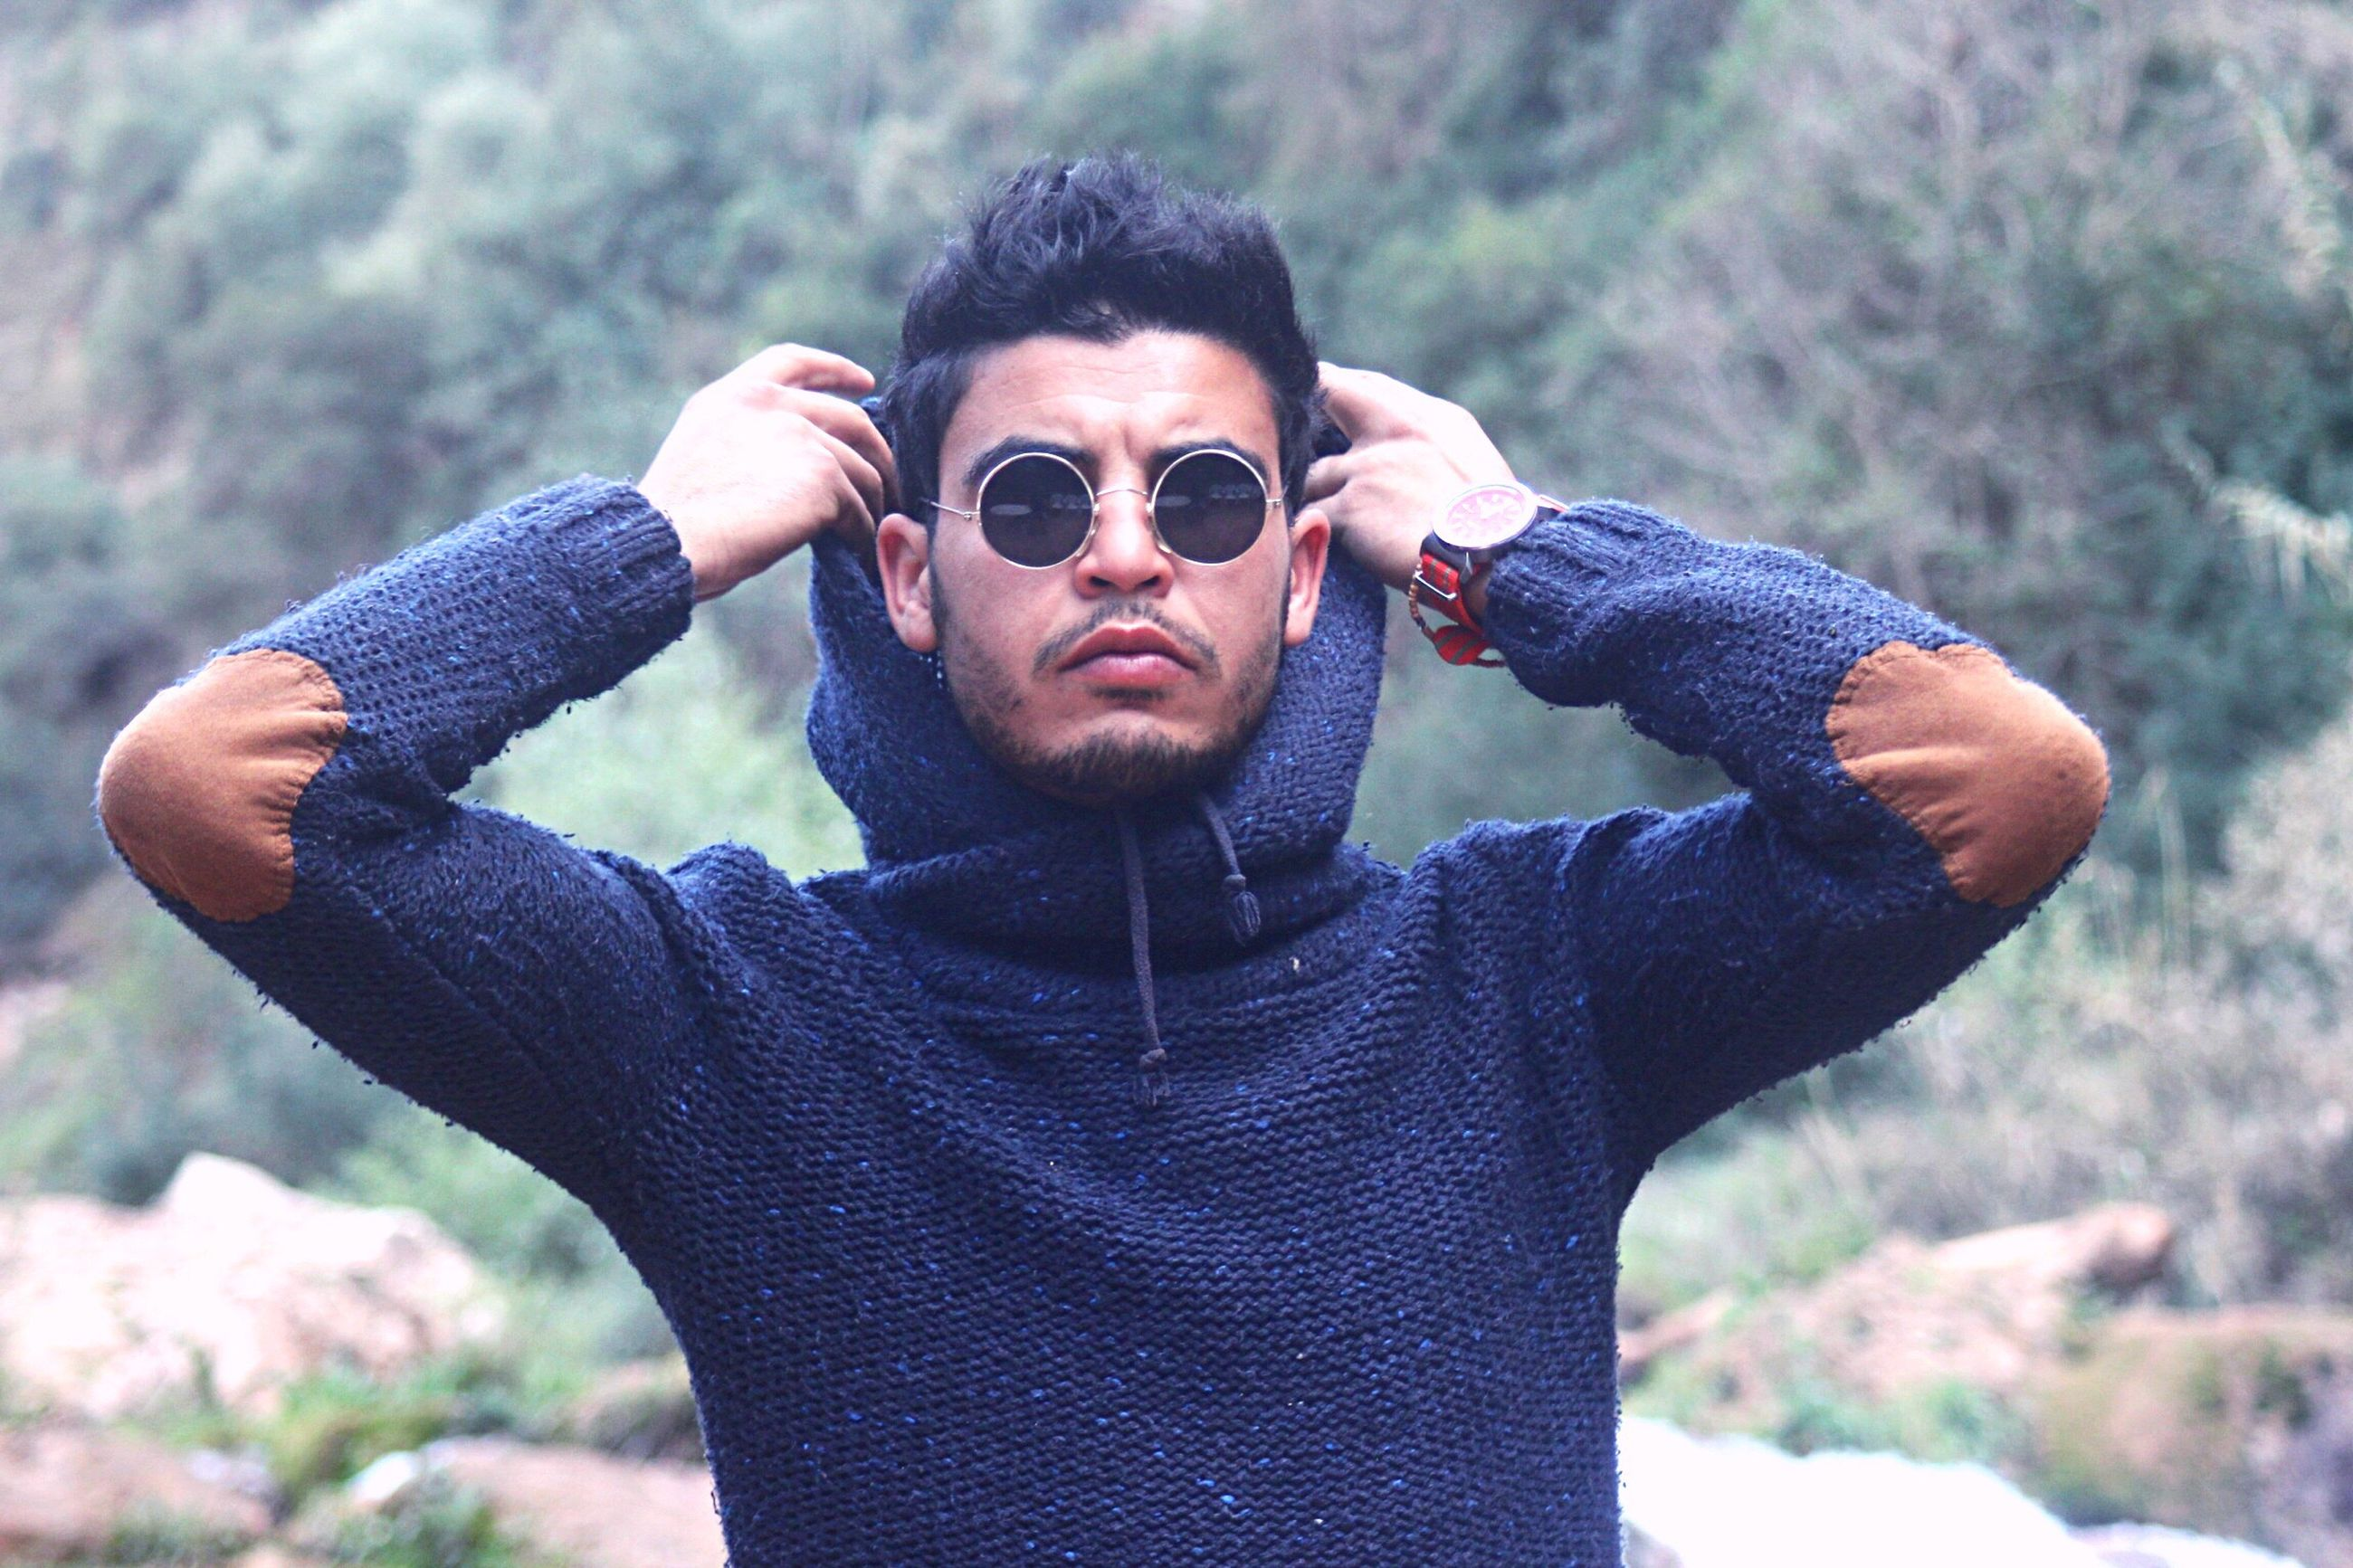 lifestyles, leisure activity, portrait, looking at camera, young adult, young men, focus on foreground, person, front view, headshot, sunglasses, close-up, mid adult men, holding, outdoors, day, casual clothing, mid adult